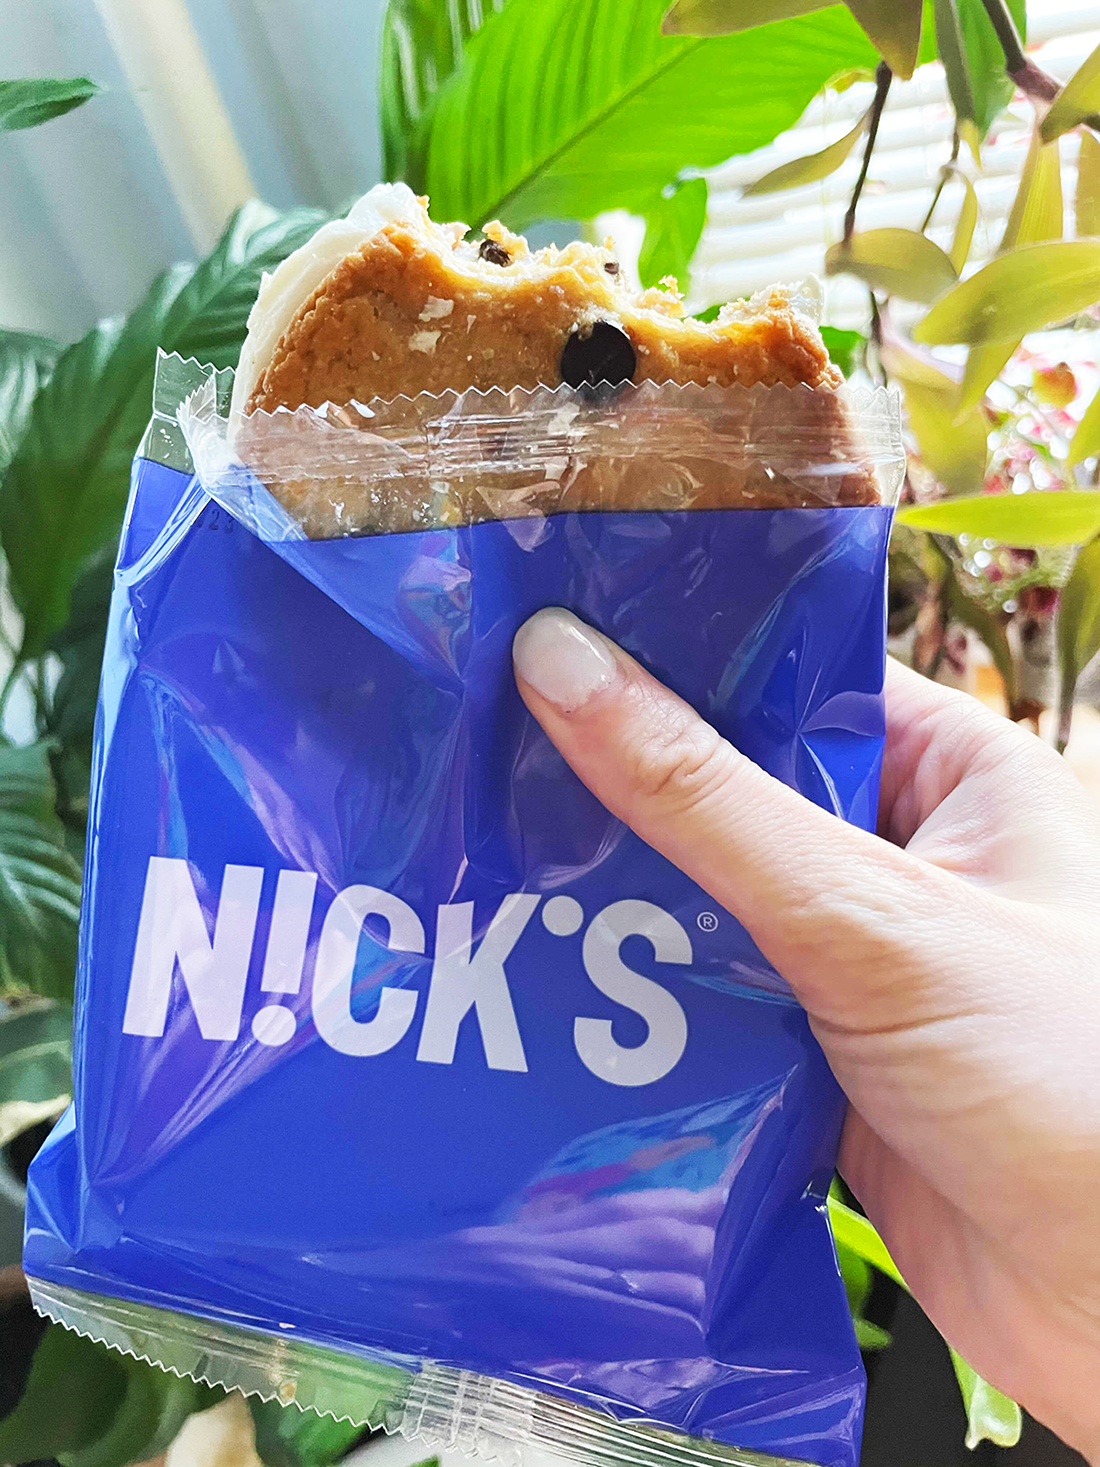 buzzfeed editor holding nick's ice cream cookie sandwich in plastic packaging